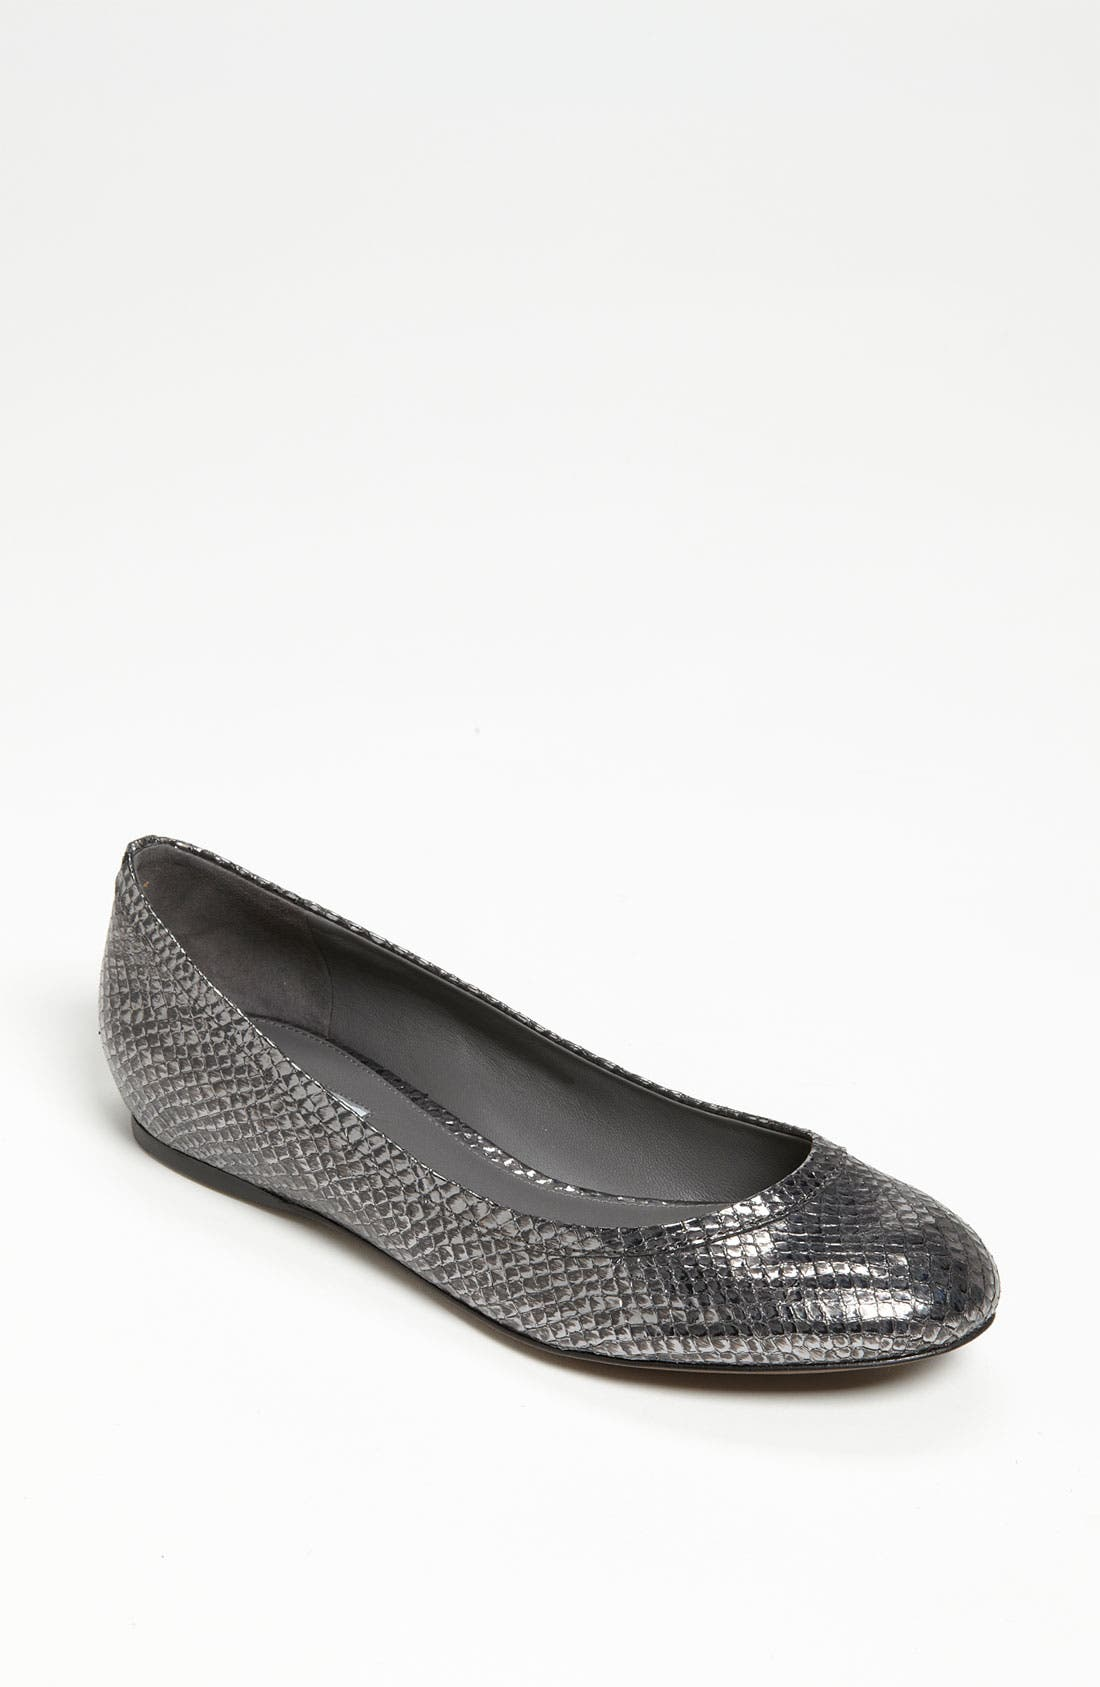 Alternate Image 1 Selected - Vera Wang Footwear 'Hillary' Flat